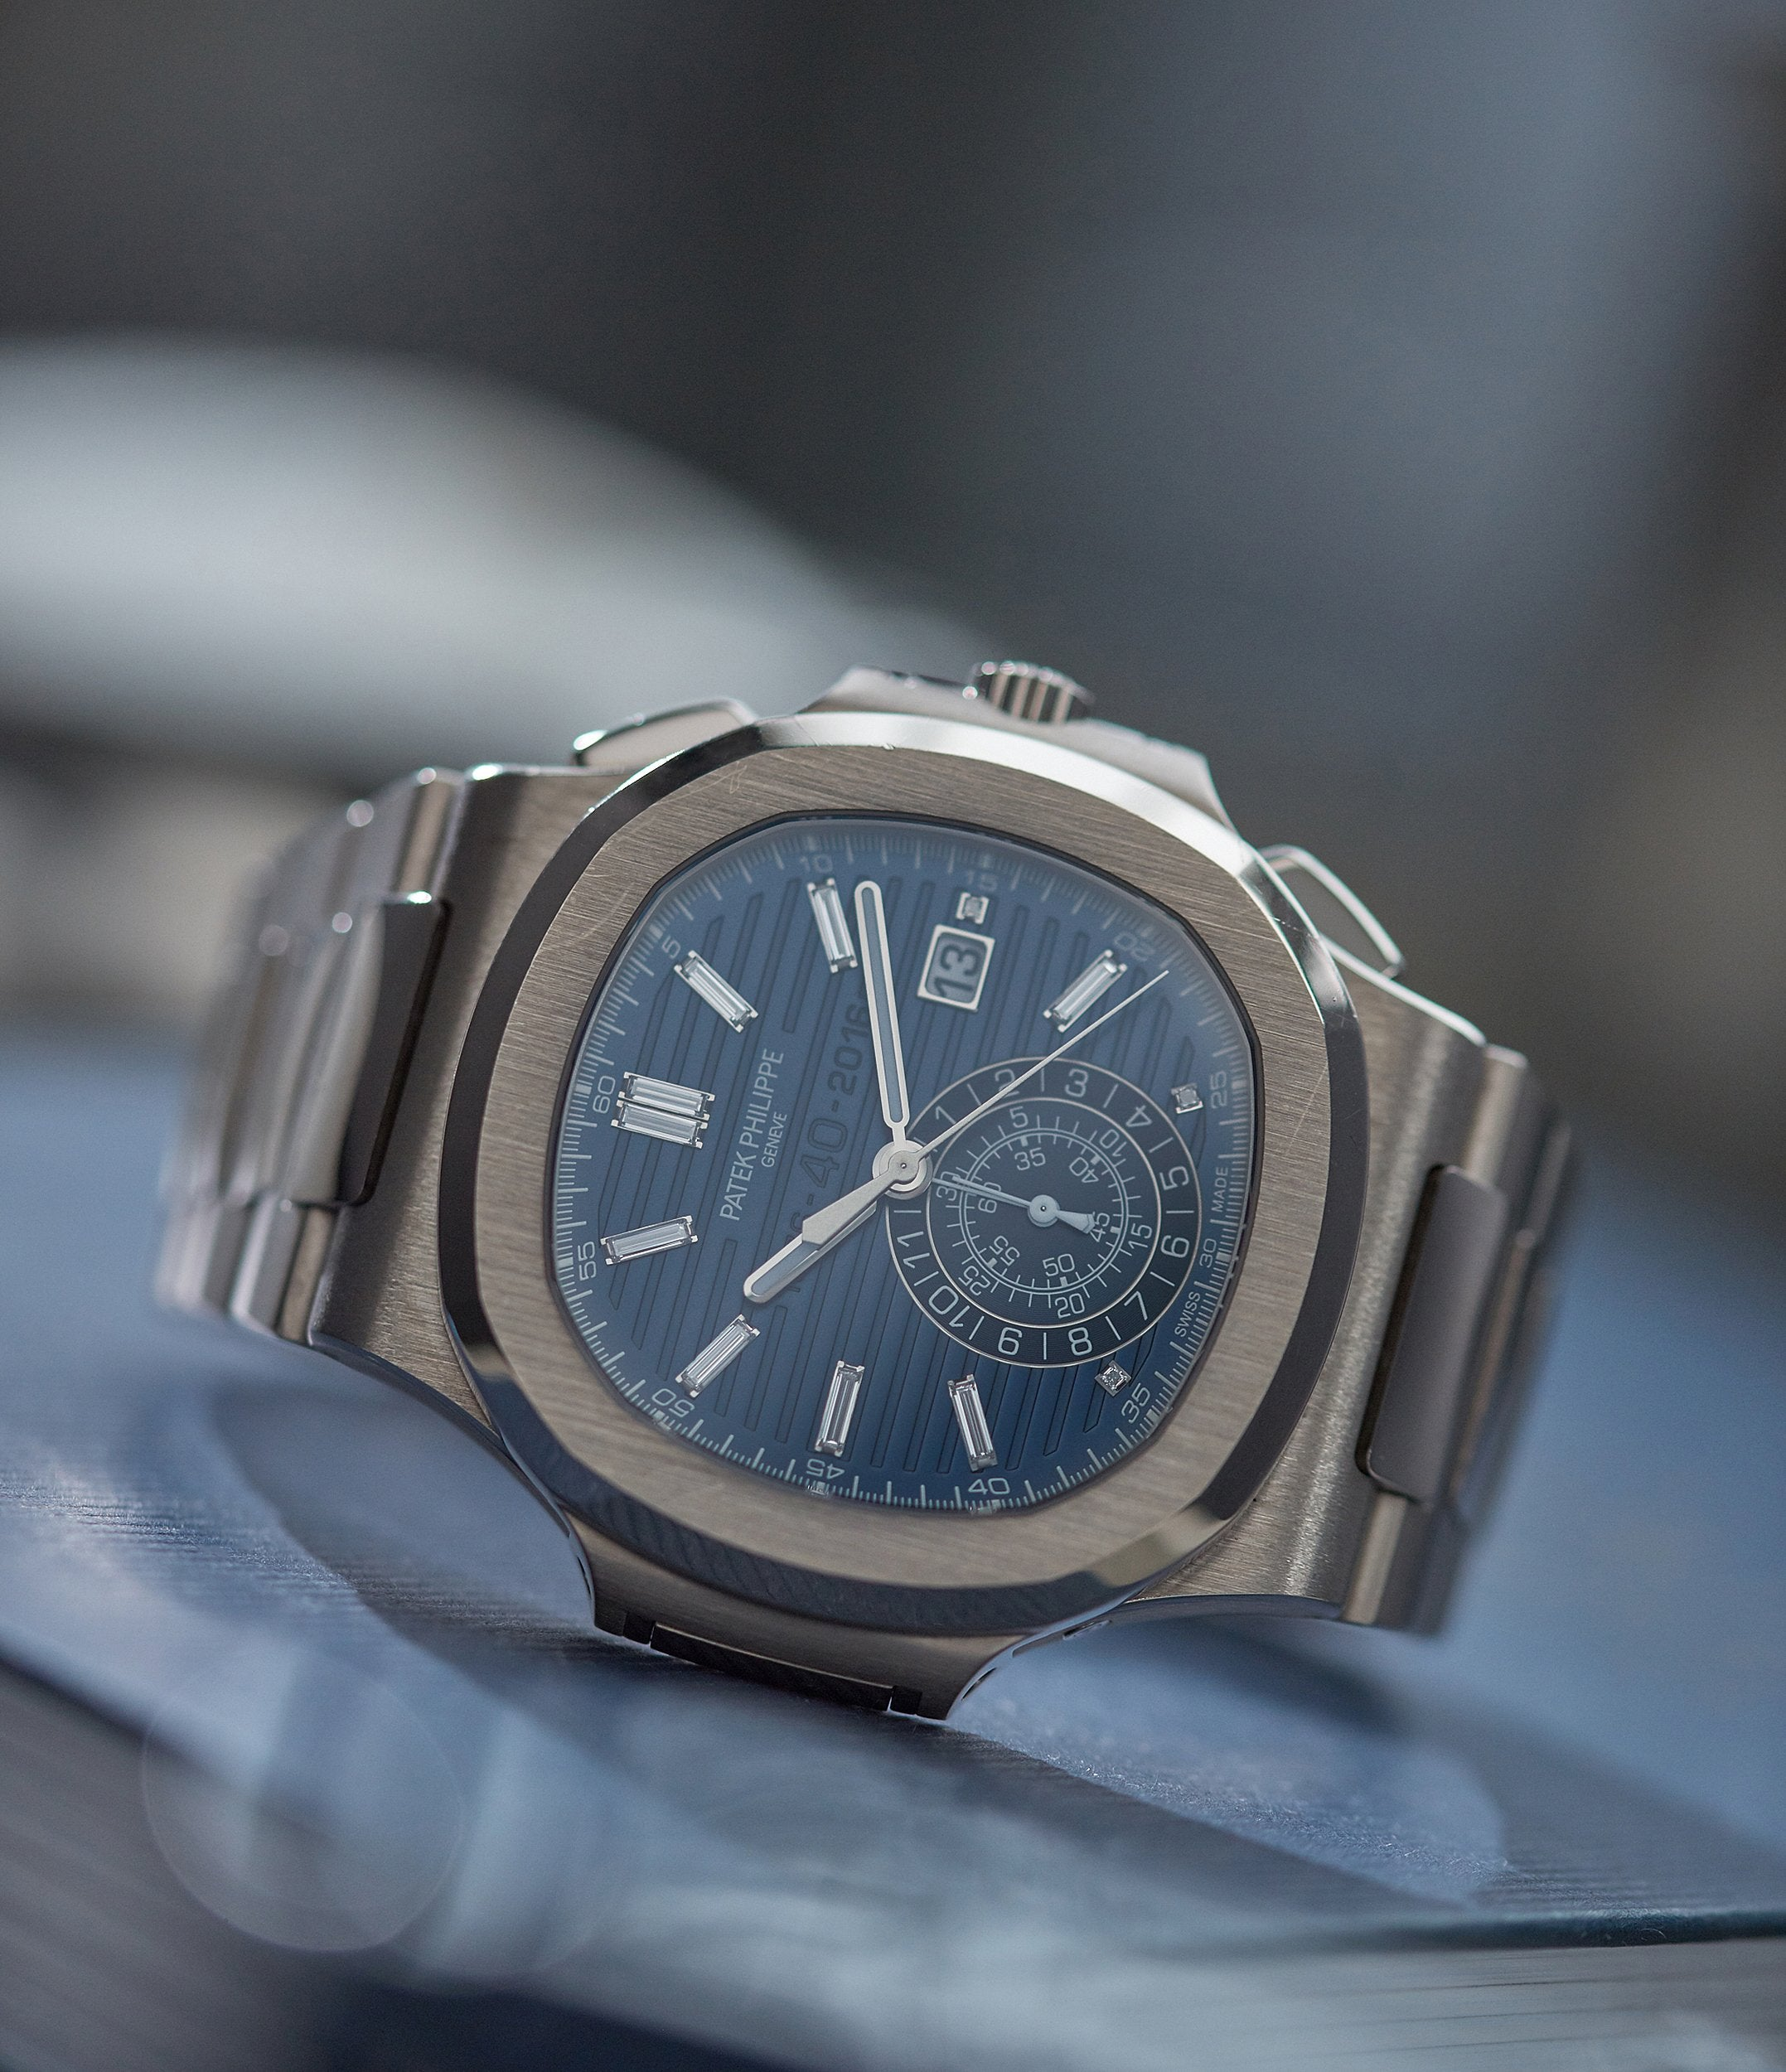 Ref. 5976 Patek Philippe 40th Anniversary Nautilus Limited Edition white gold sports watch for sale online A Collected Man London